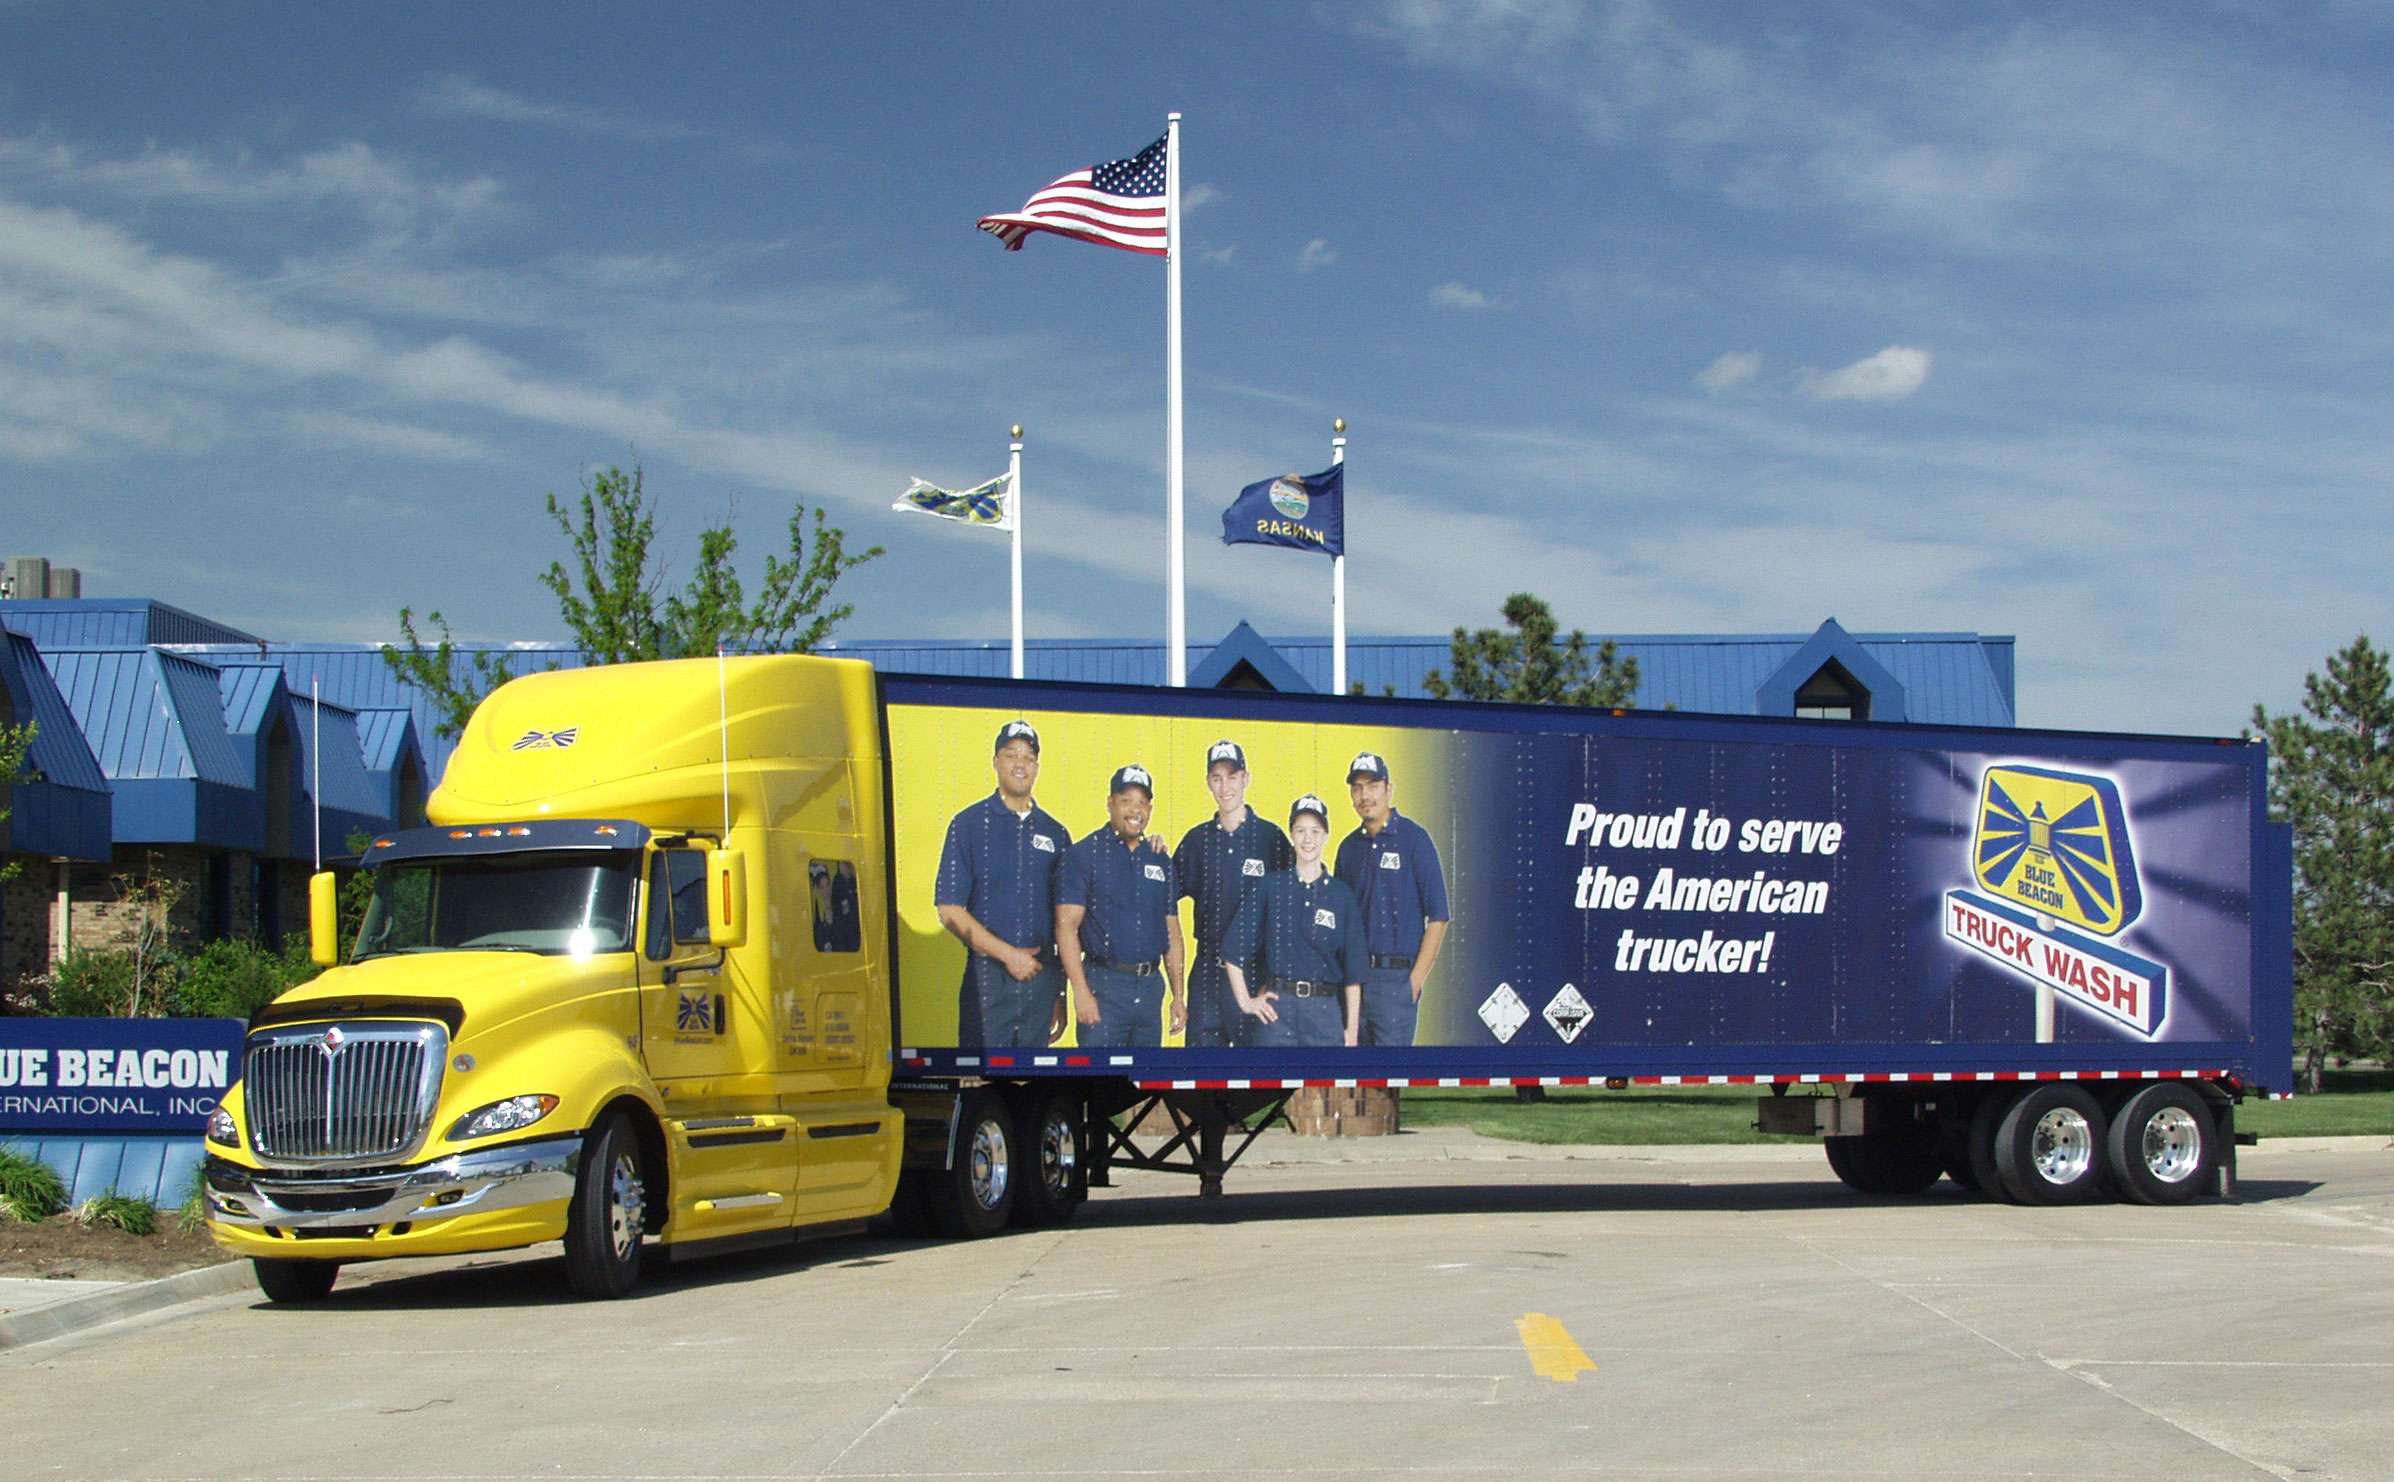 Truck Wash Graphics on Trailer